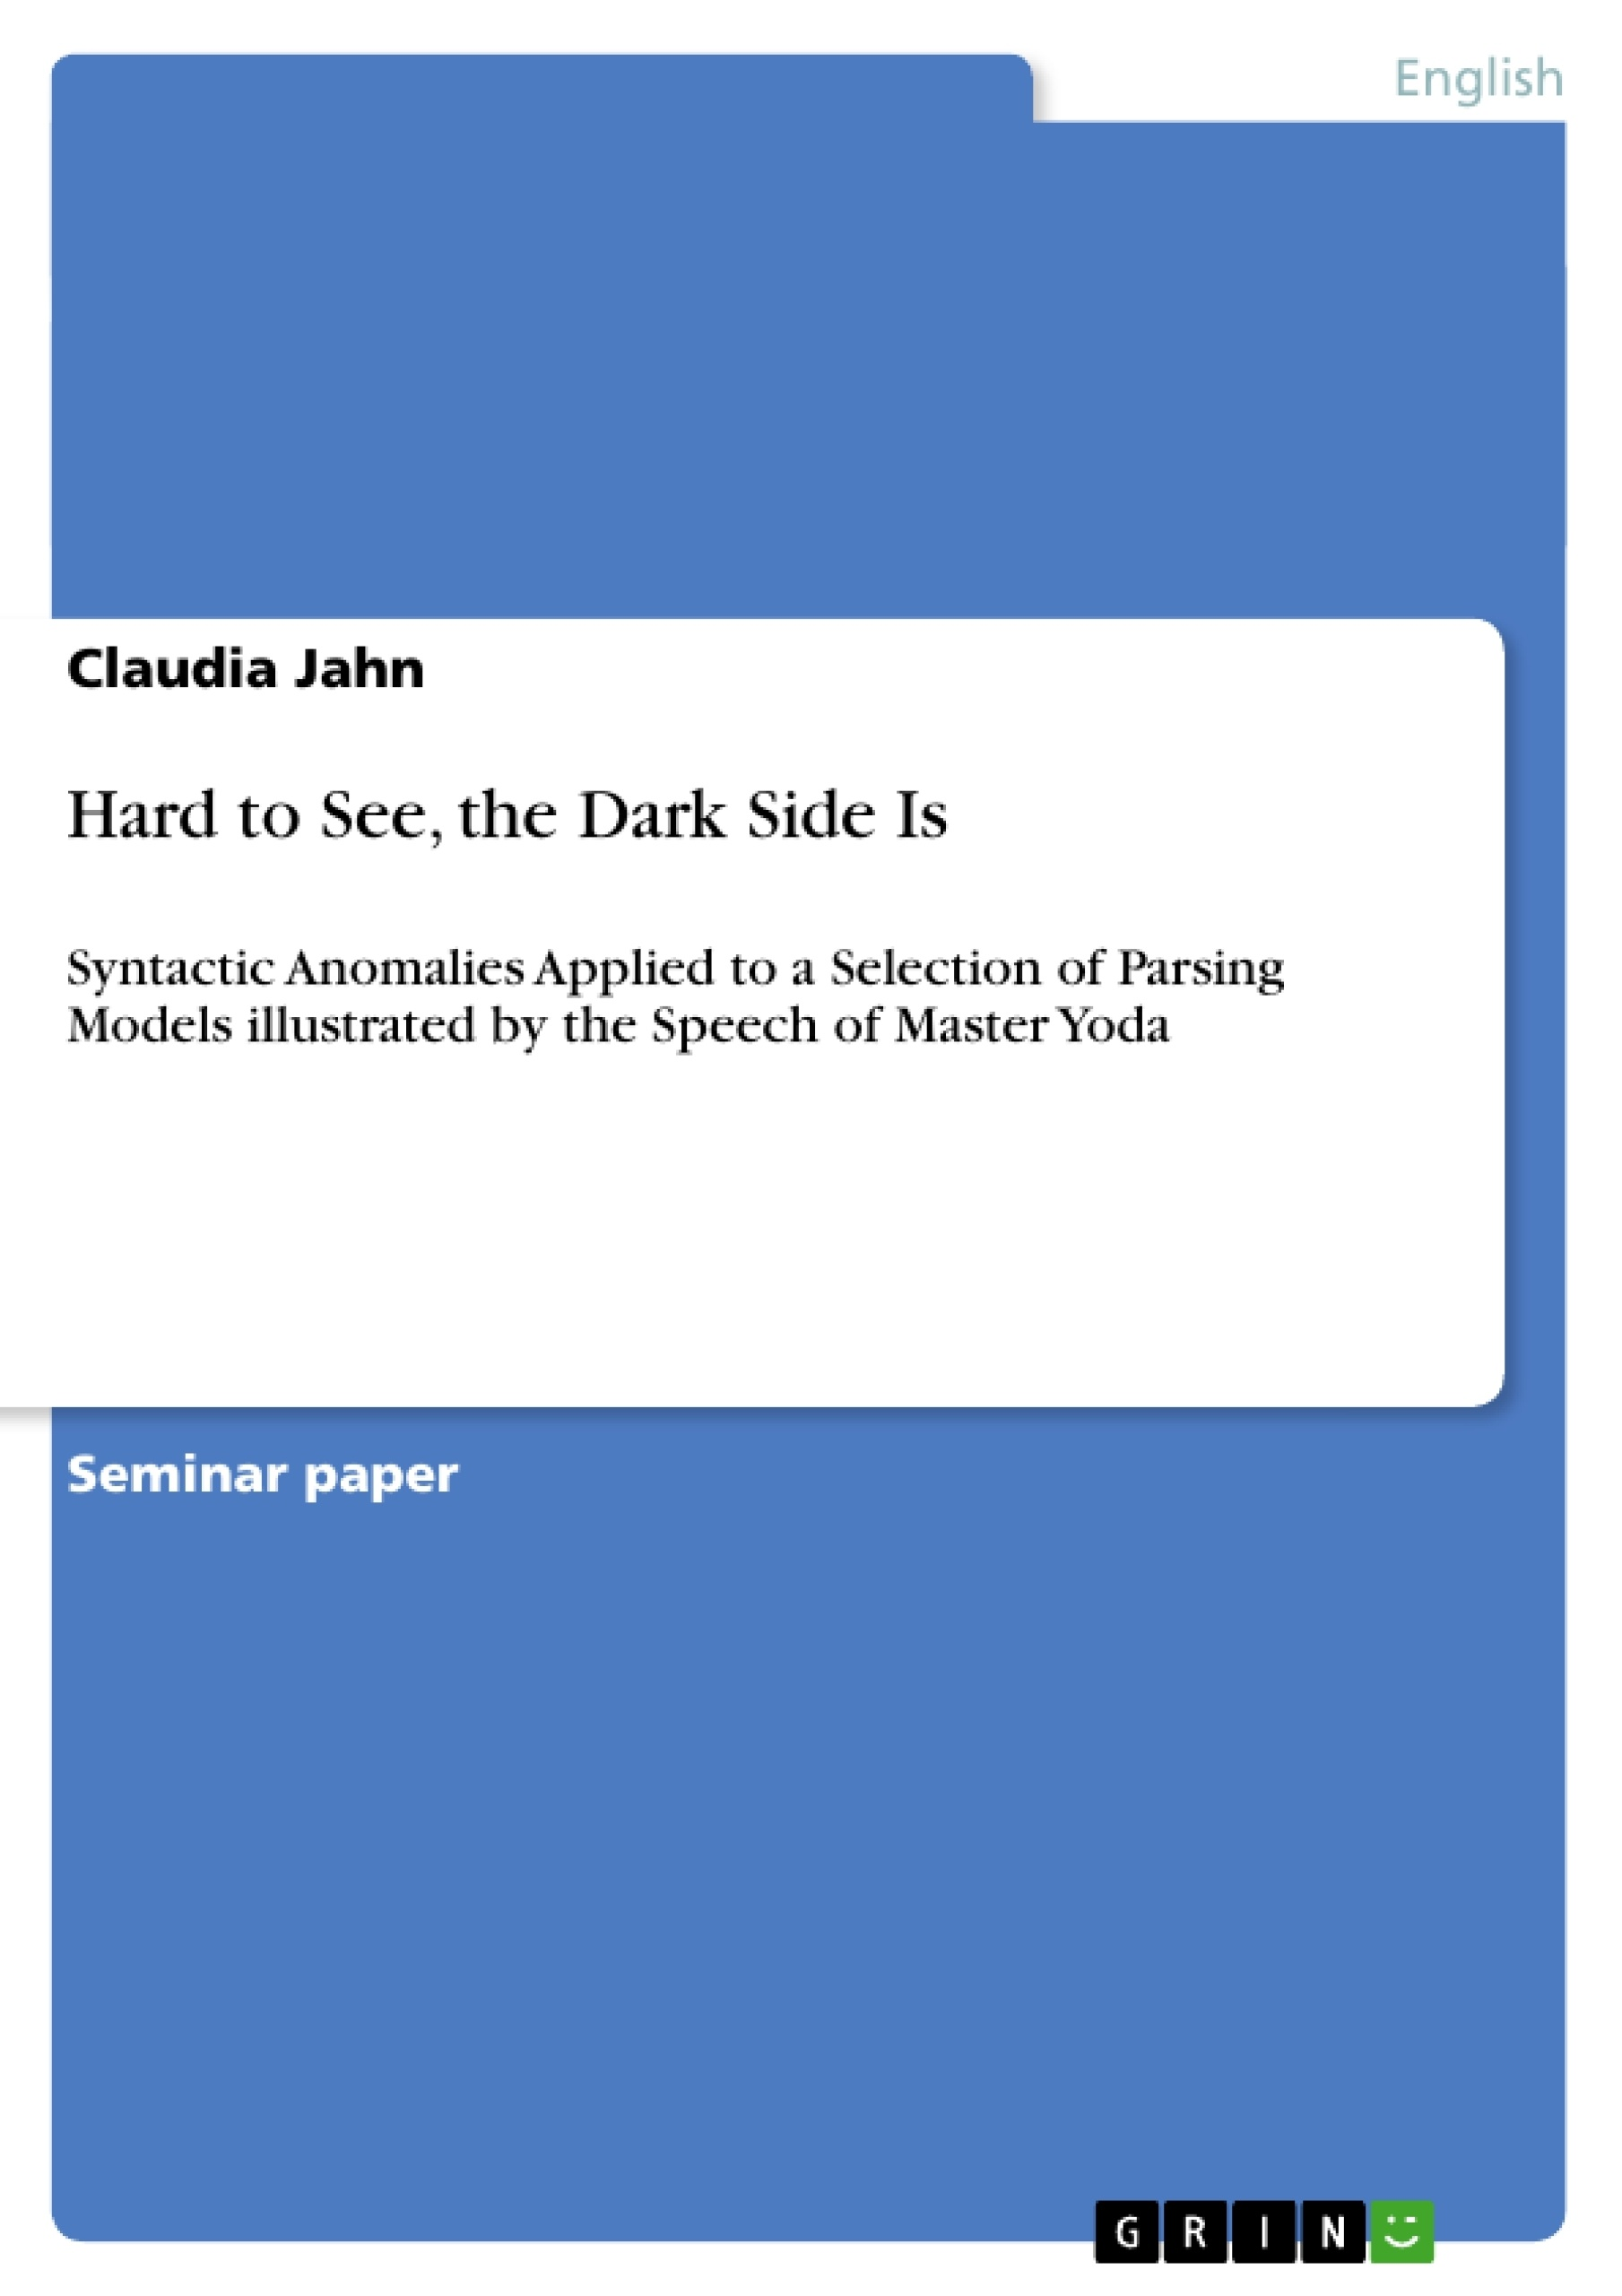 Title: Hard to See, the Dark Side Is